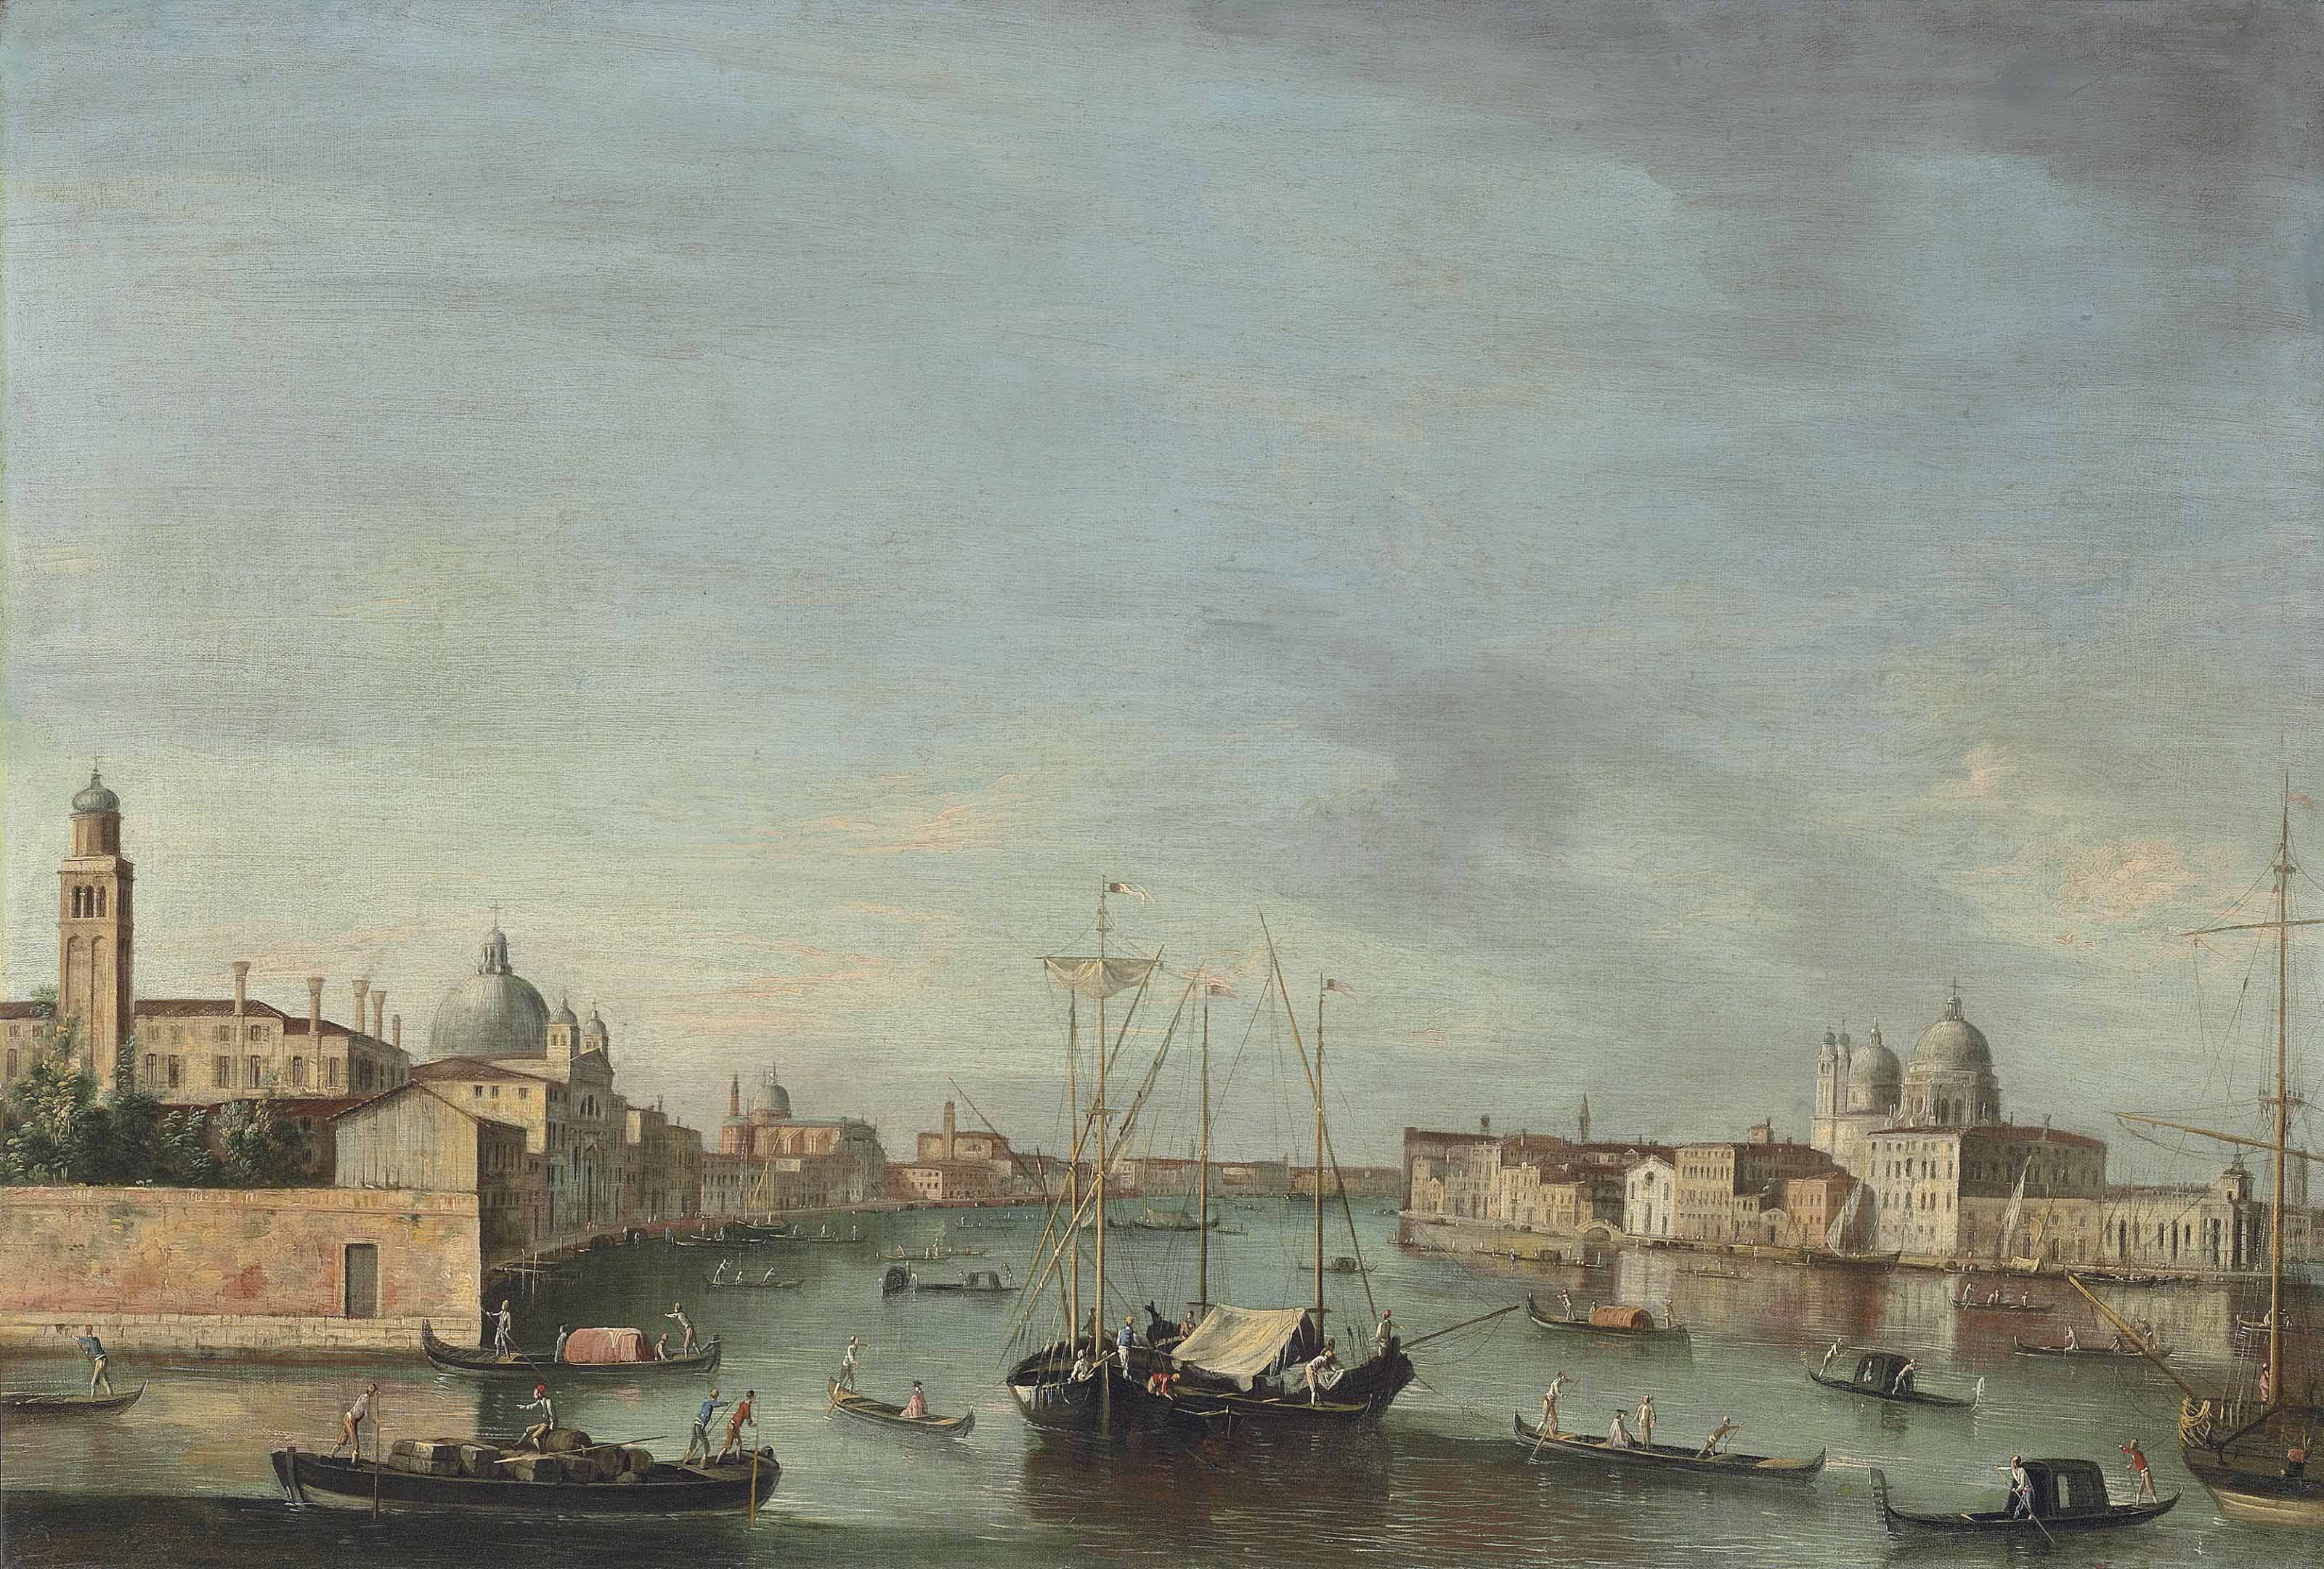 The Giudecca, Venice, with the Zattere and the Redentore